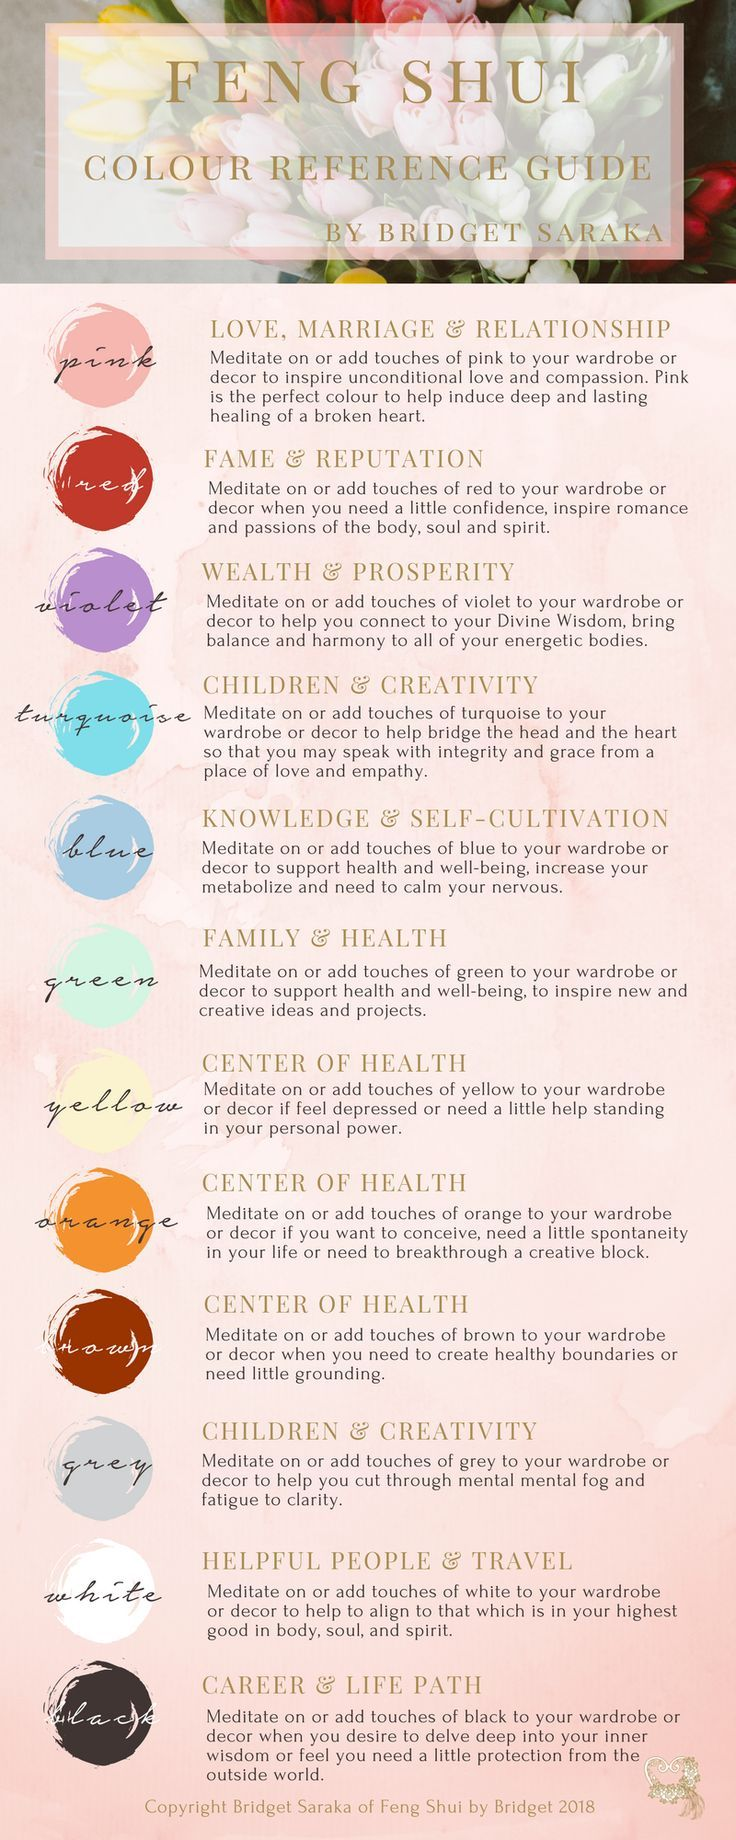 Feng Shui Colour Reference Guide Infographic - Feng Shui by Bridget